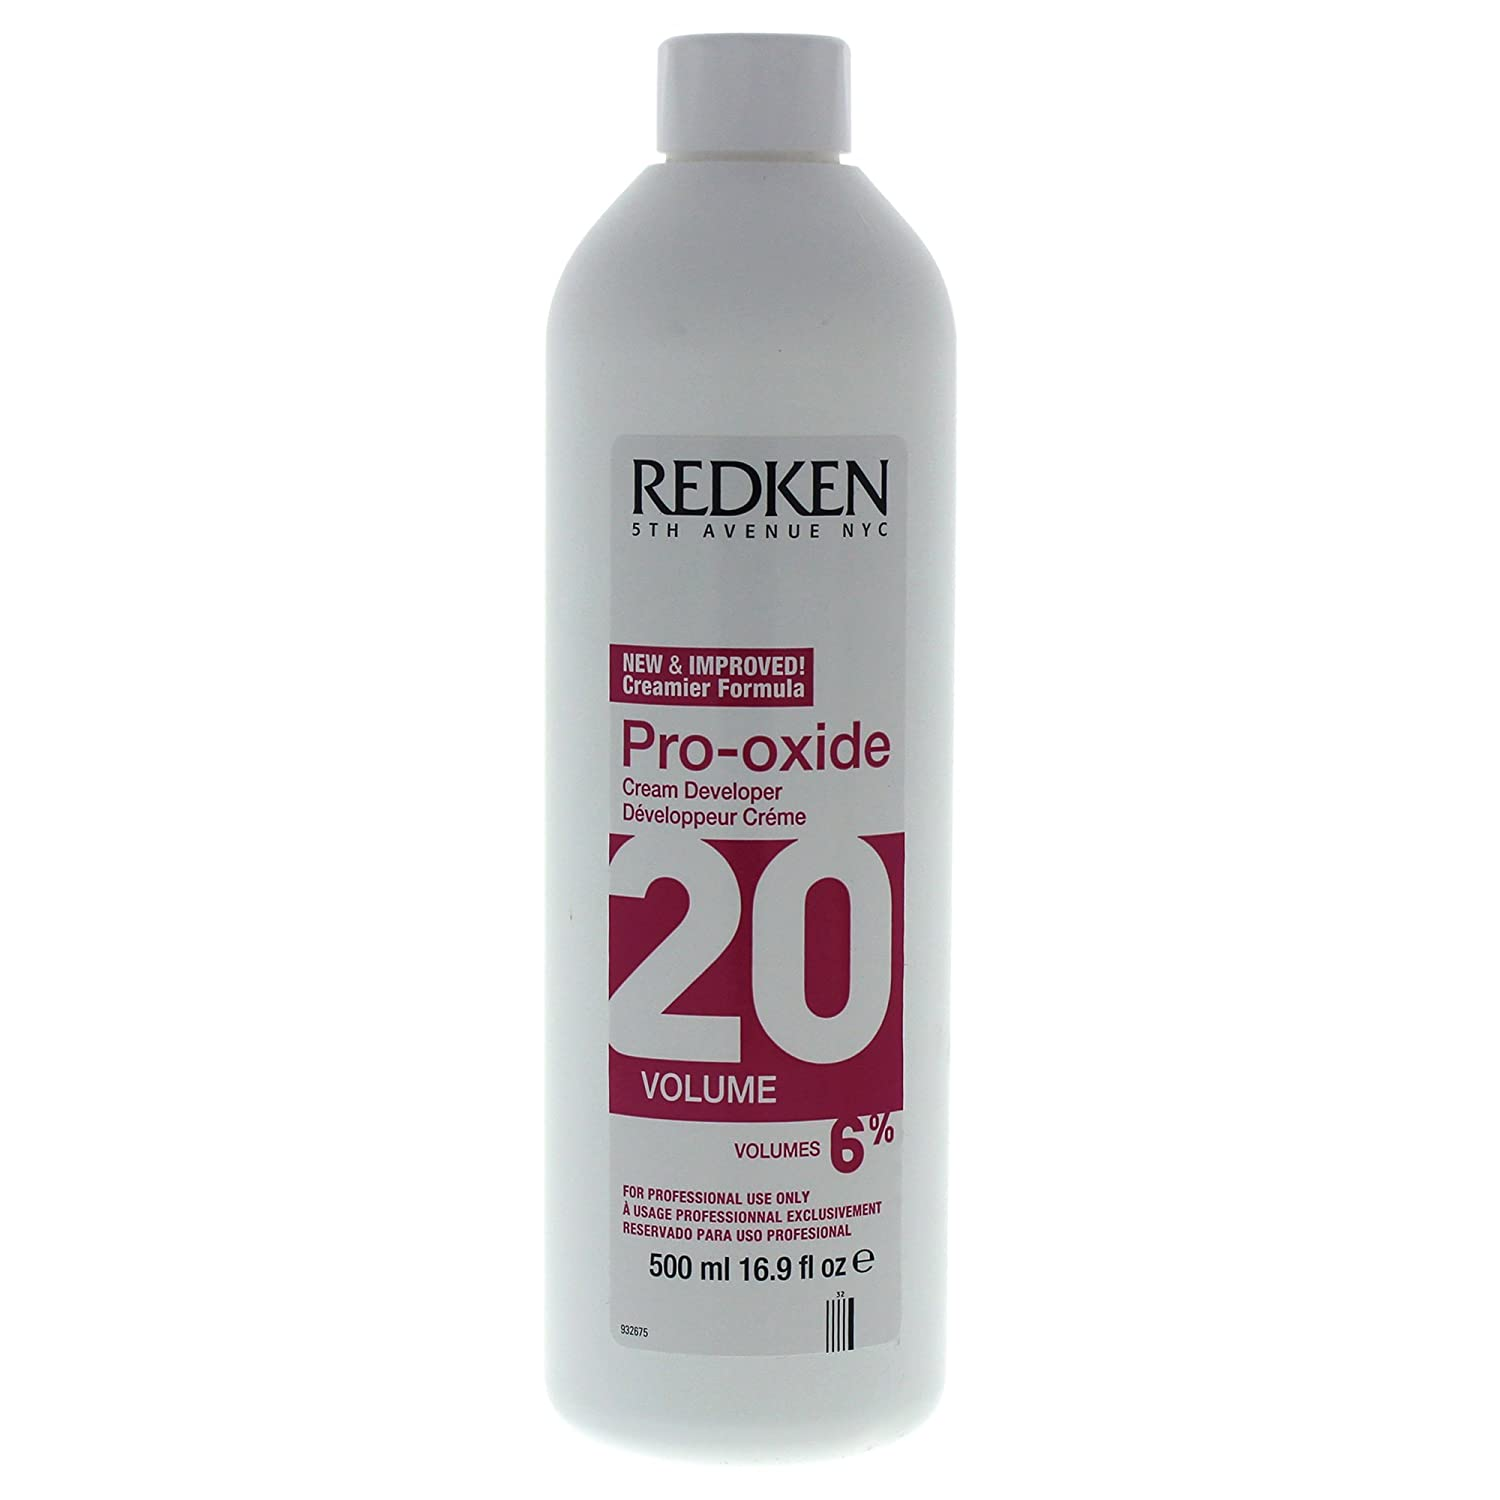 Redken Pro-Oxide Cream Developer 20 Volume Treatment for Unisex, 16.9 Ounce PerfumeWorldWide Inc. Drop Ship U-HC-11692